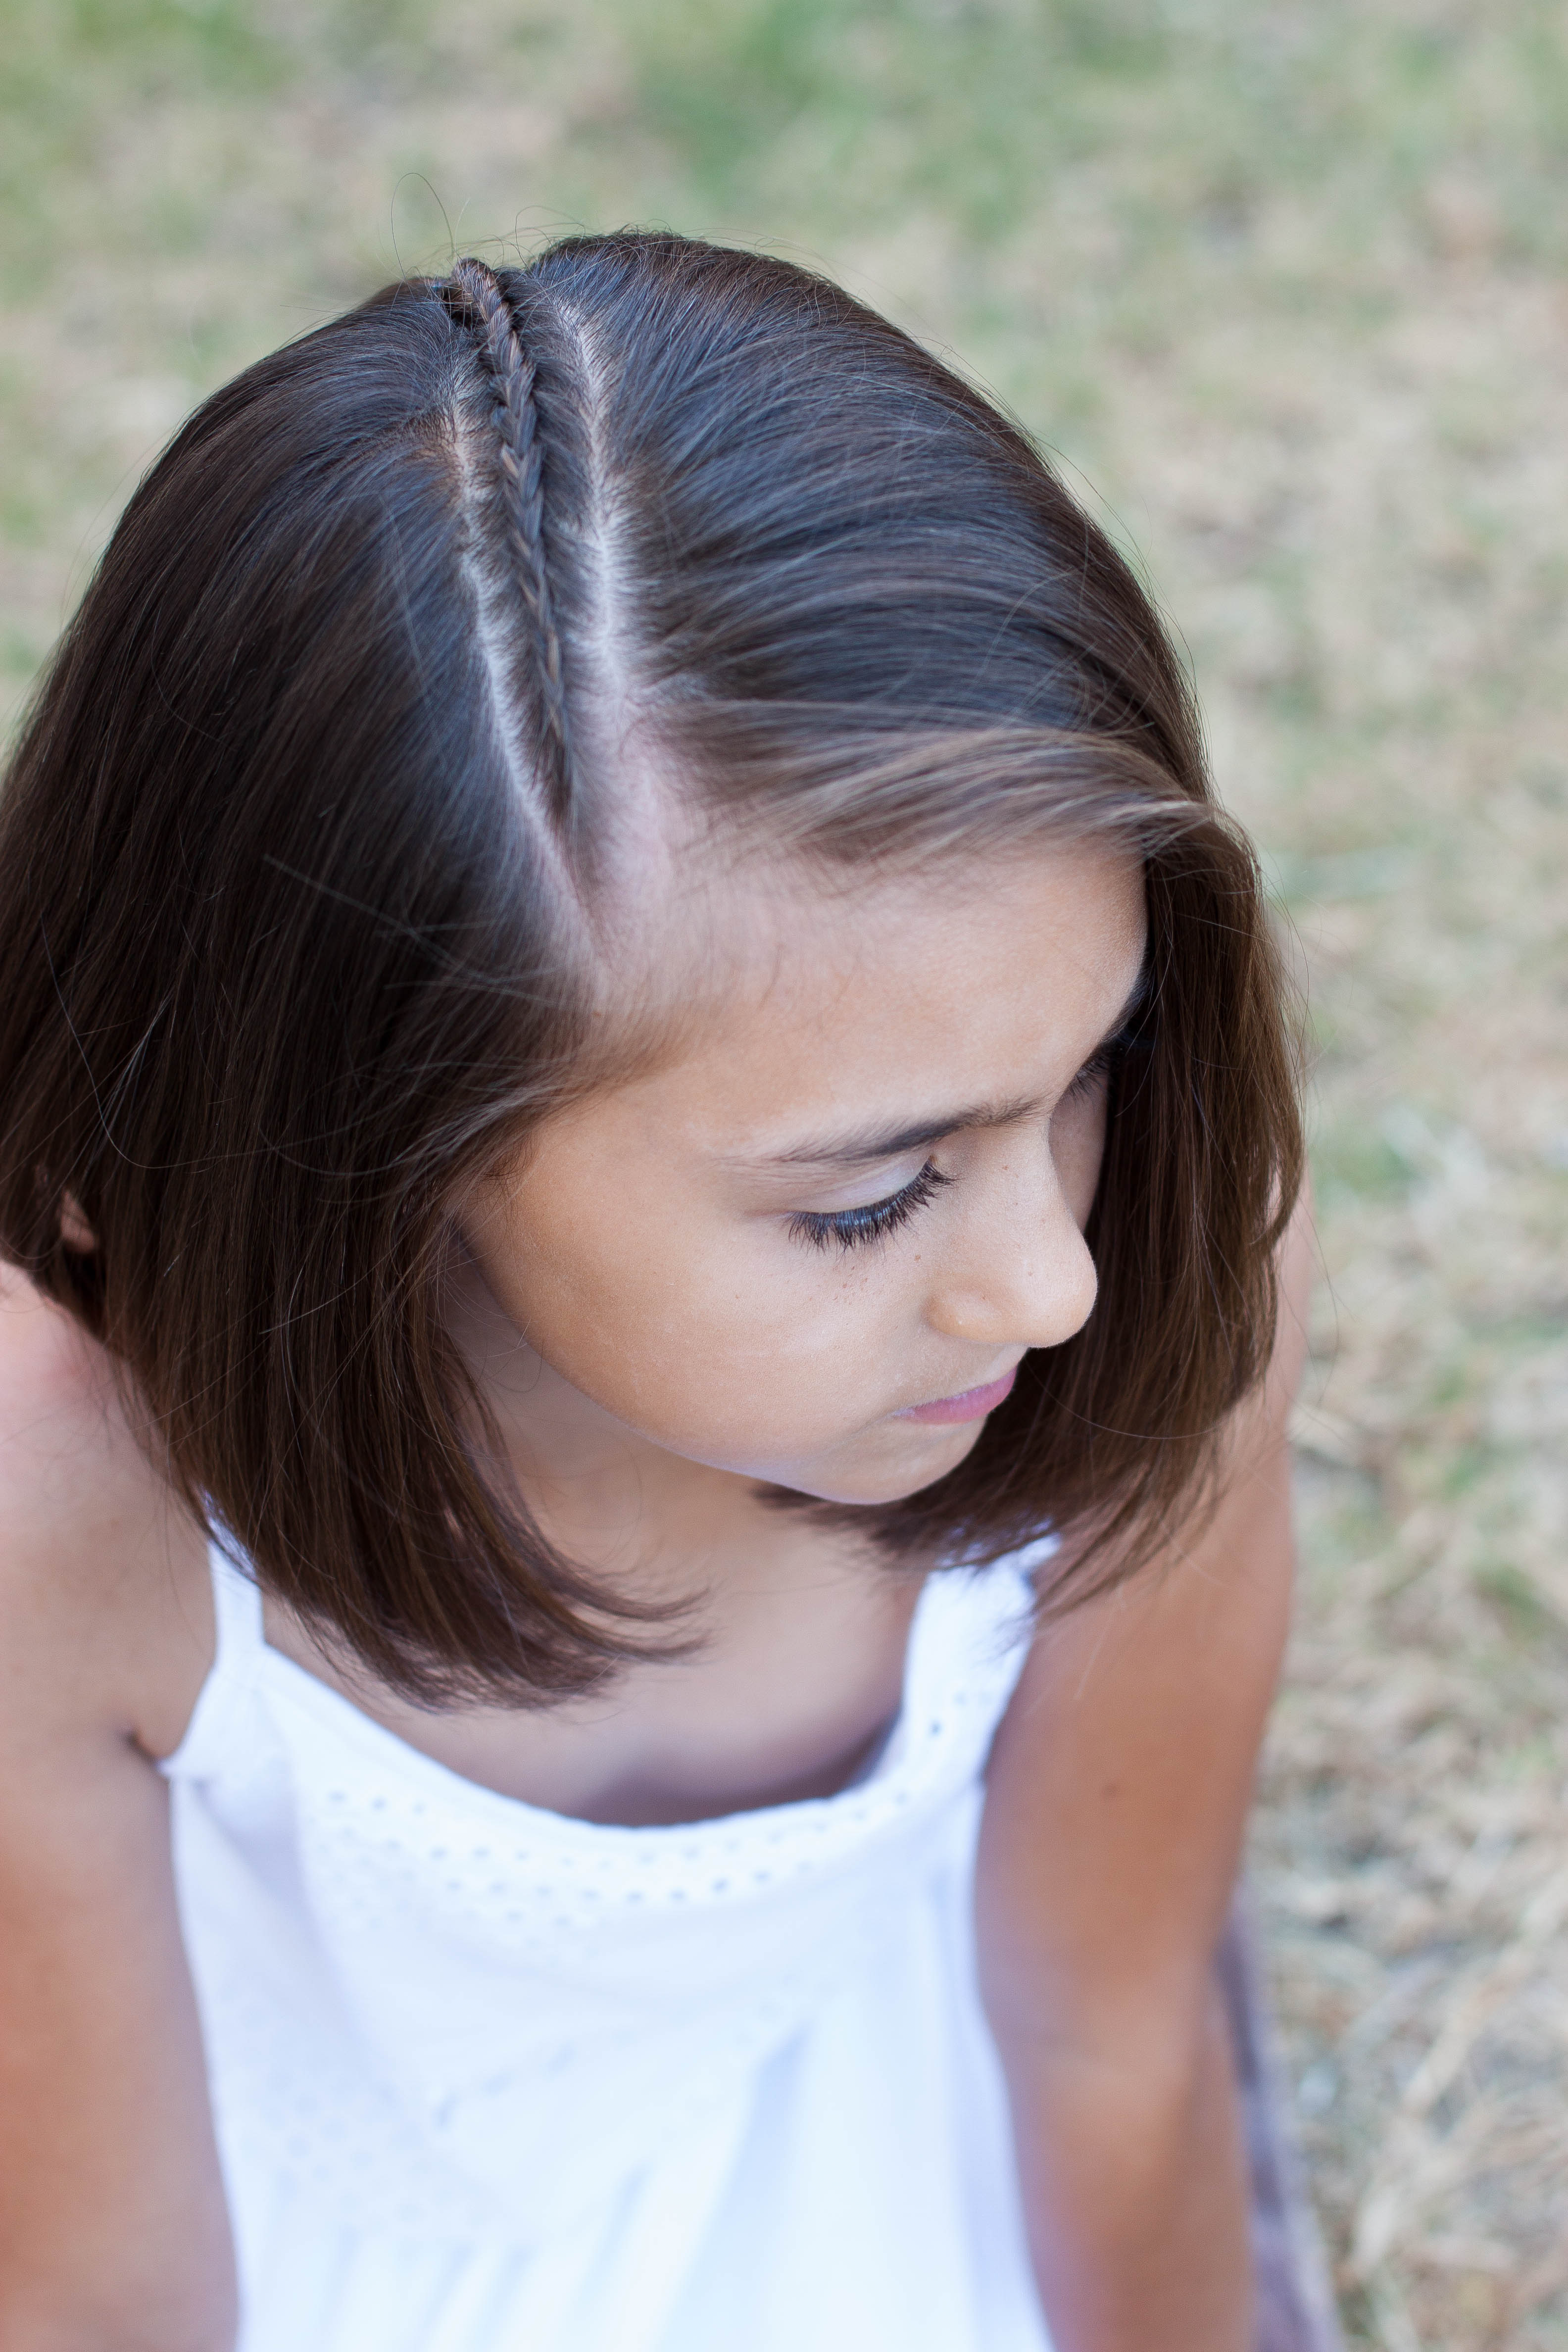 Cute Hairstyles For Girls With Short Hair – Leymatson Intended For Cool Hairstyles For Short Hair Girl (View 20 of 25)